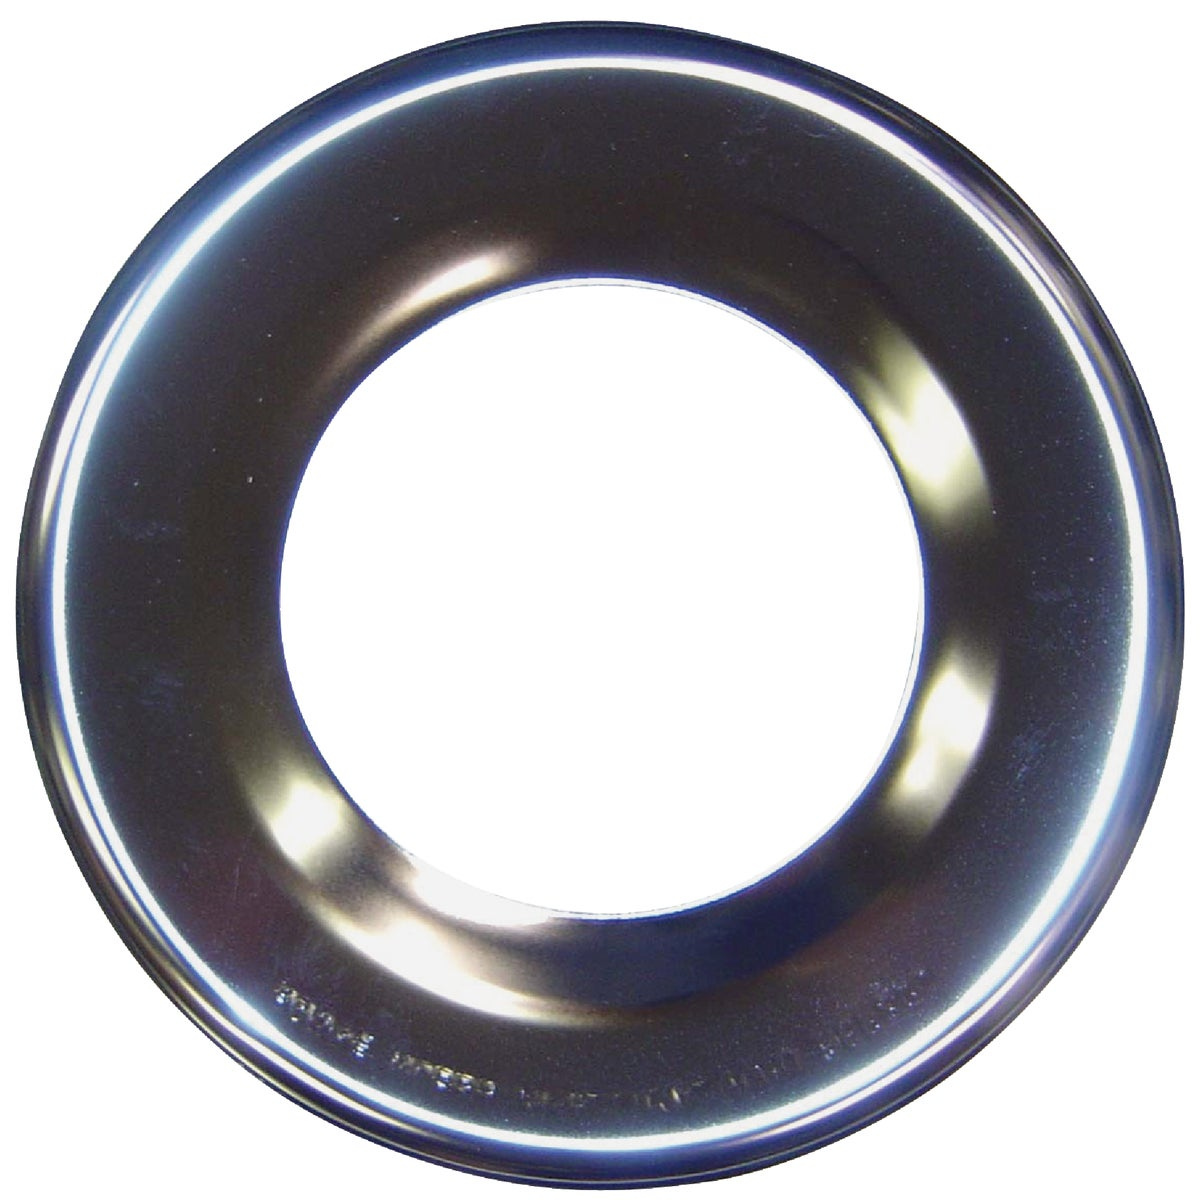 ROUND GAS DRIP PAN - RGP-200 by Range Kleen Mfg Inc